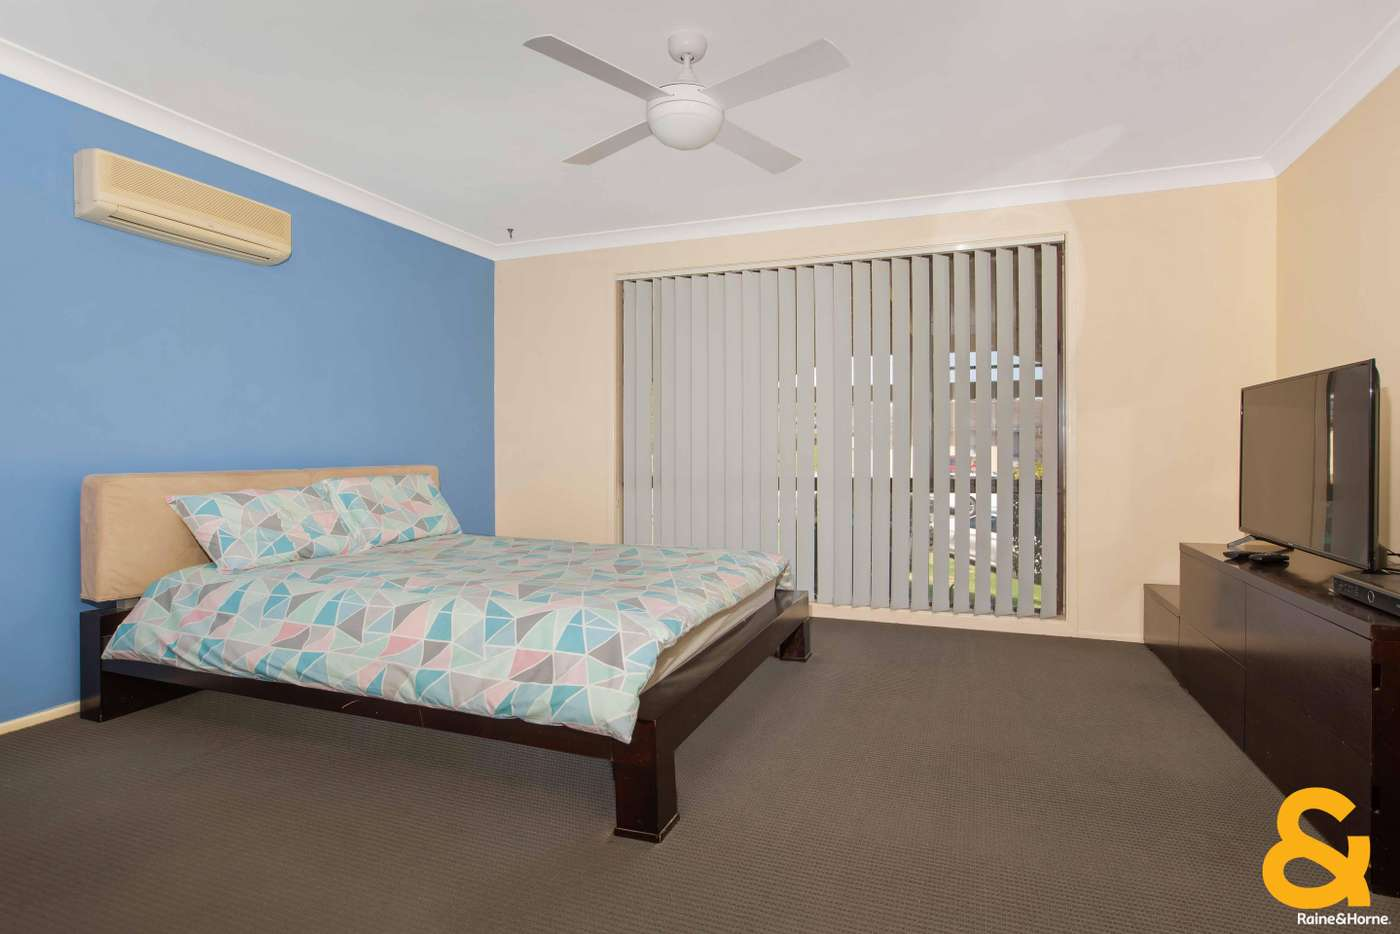 Sixth view of Homely house listing, 3 Yarrabee Place, Colyton NSW 2760